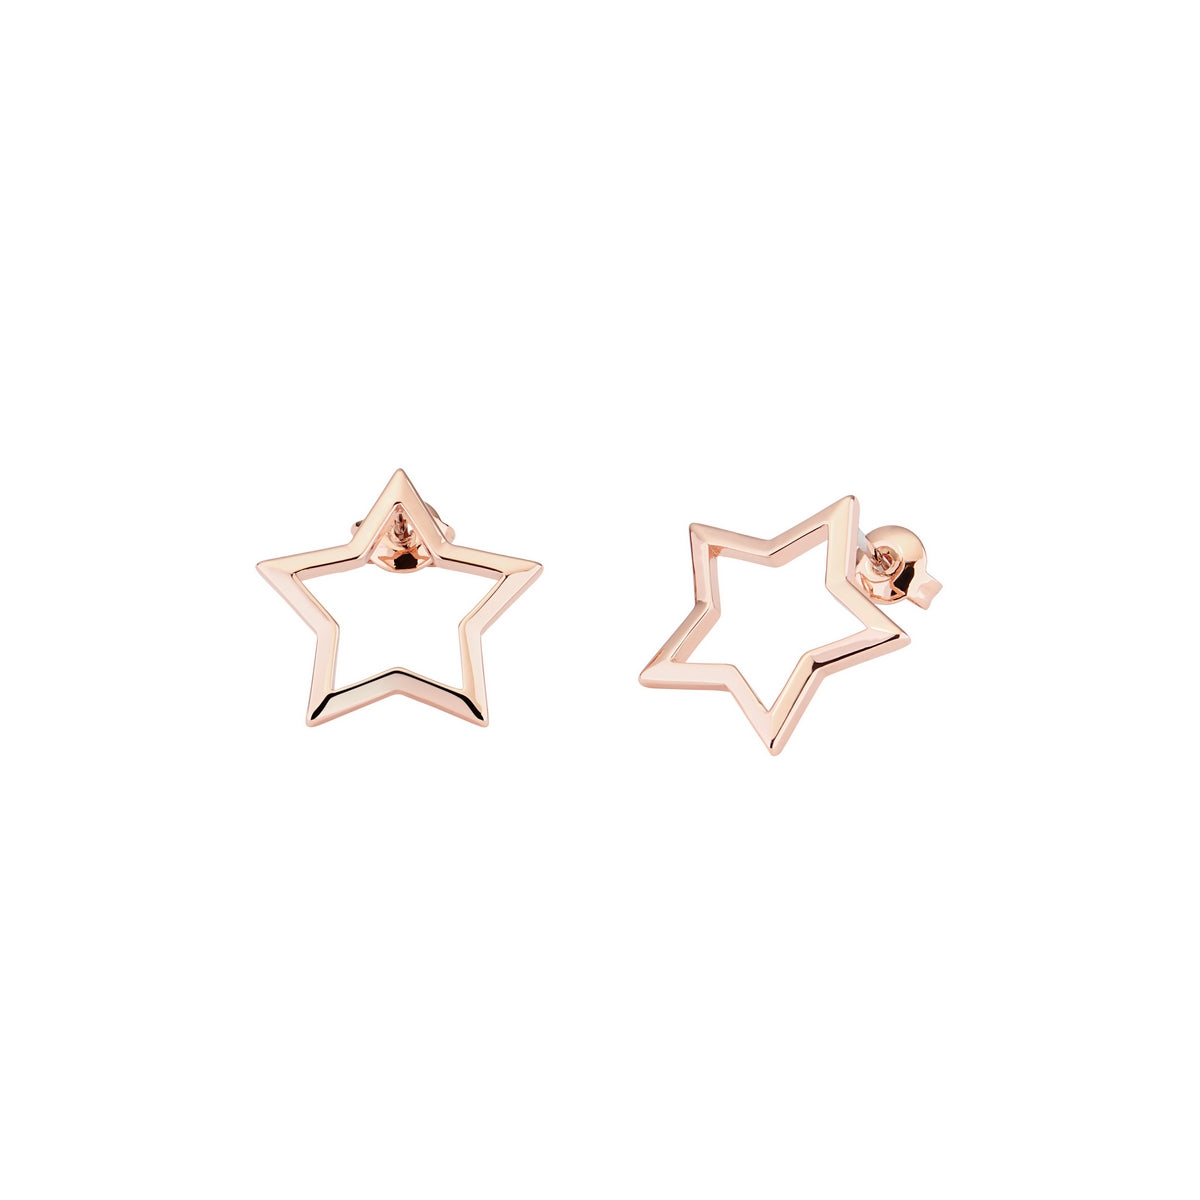 IAVORA: INTERSTELLA STUD EARRING